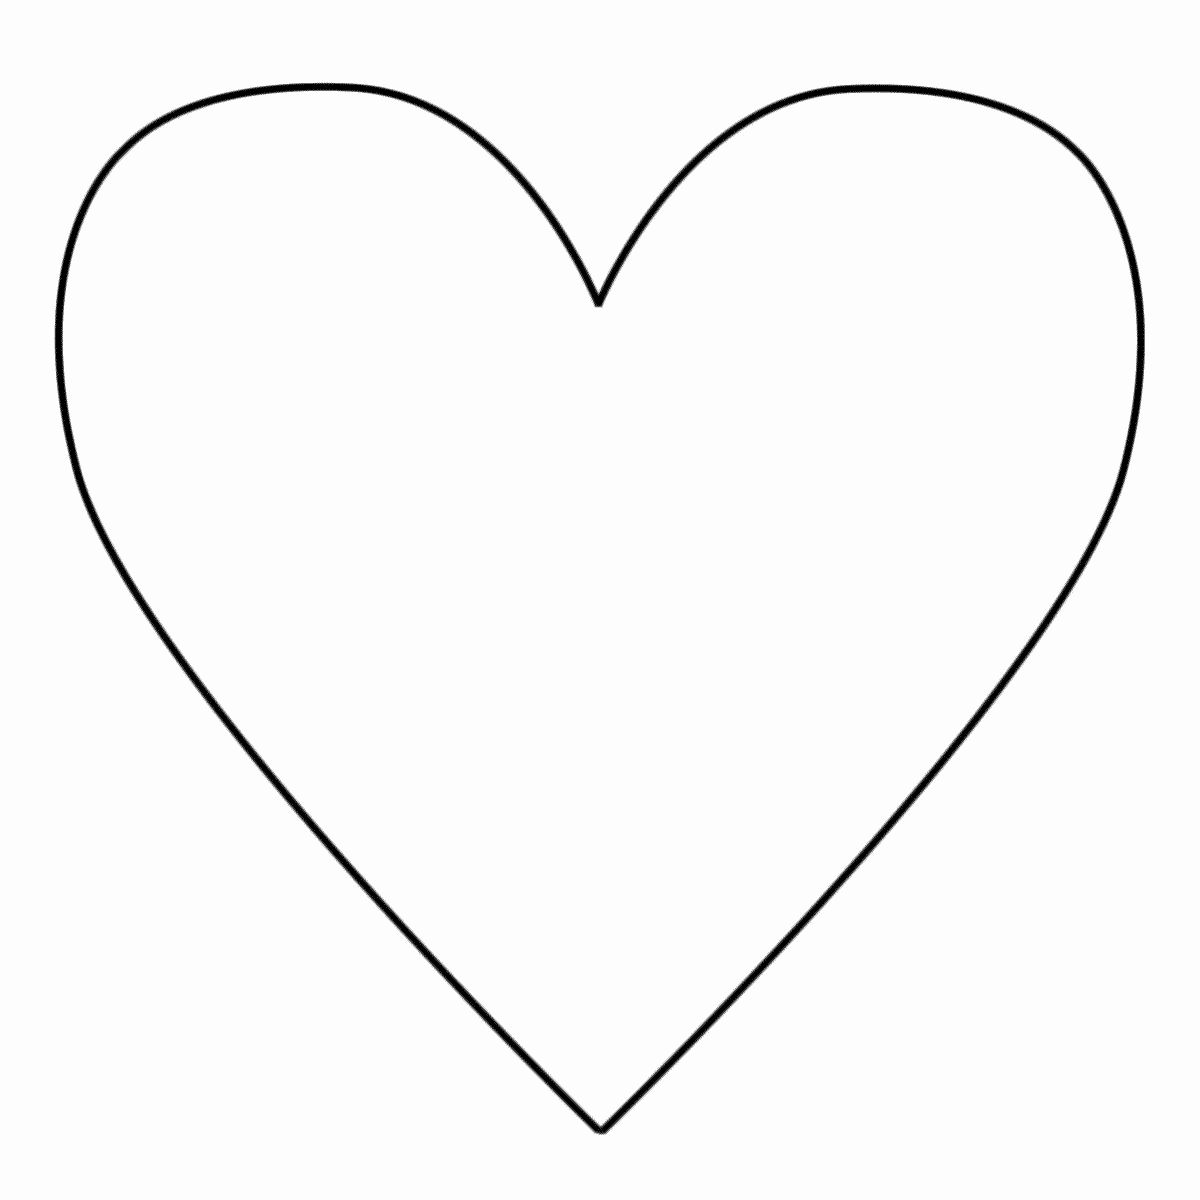 24 Heart Shape Coloring Page in 2020 (With images) | Heart ...